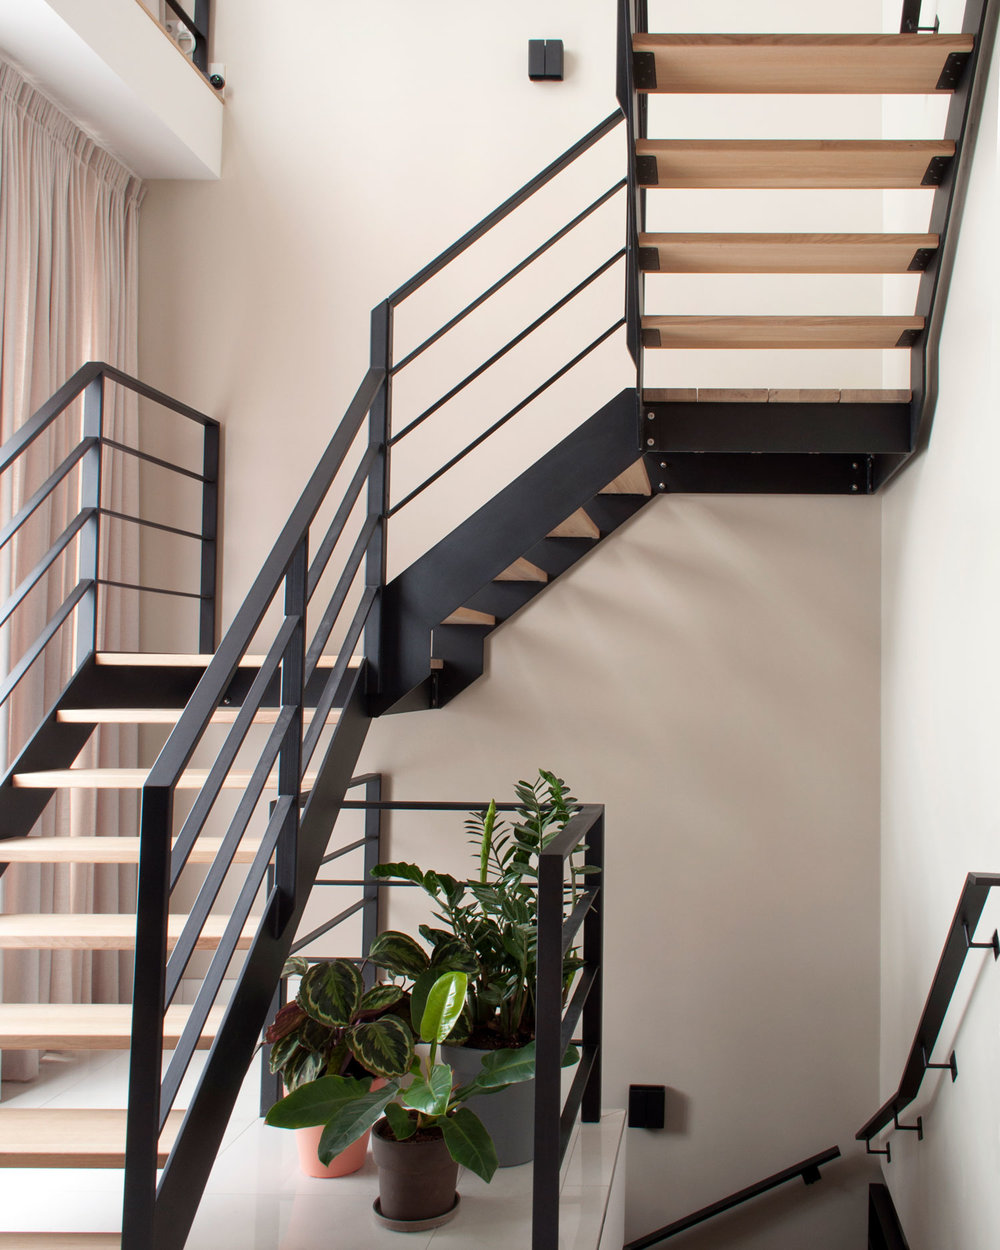 Interior-Design-Staircase-by-Matter-of-Space.jpg